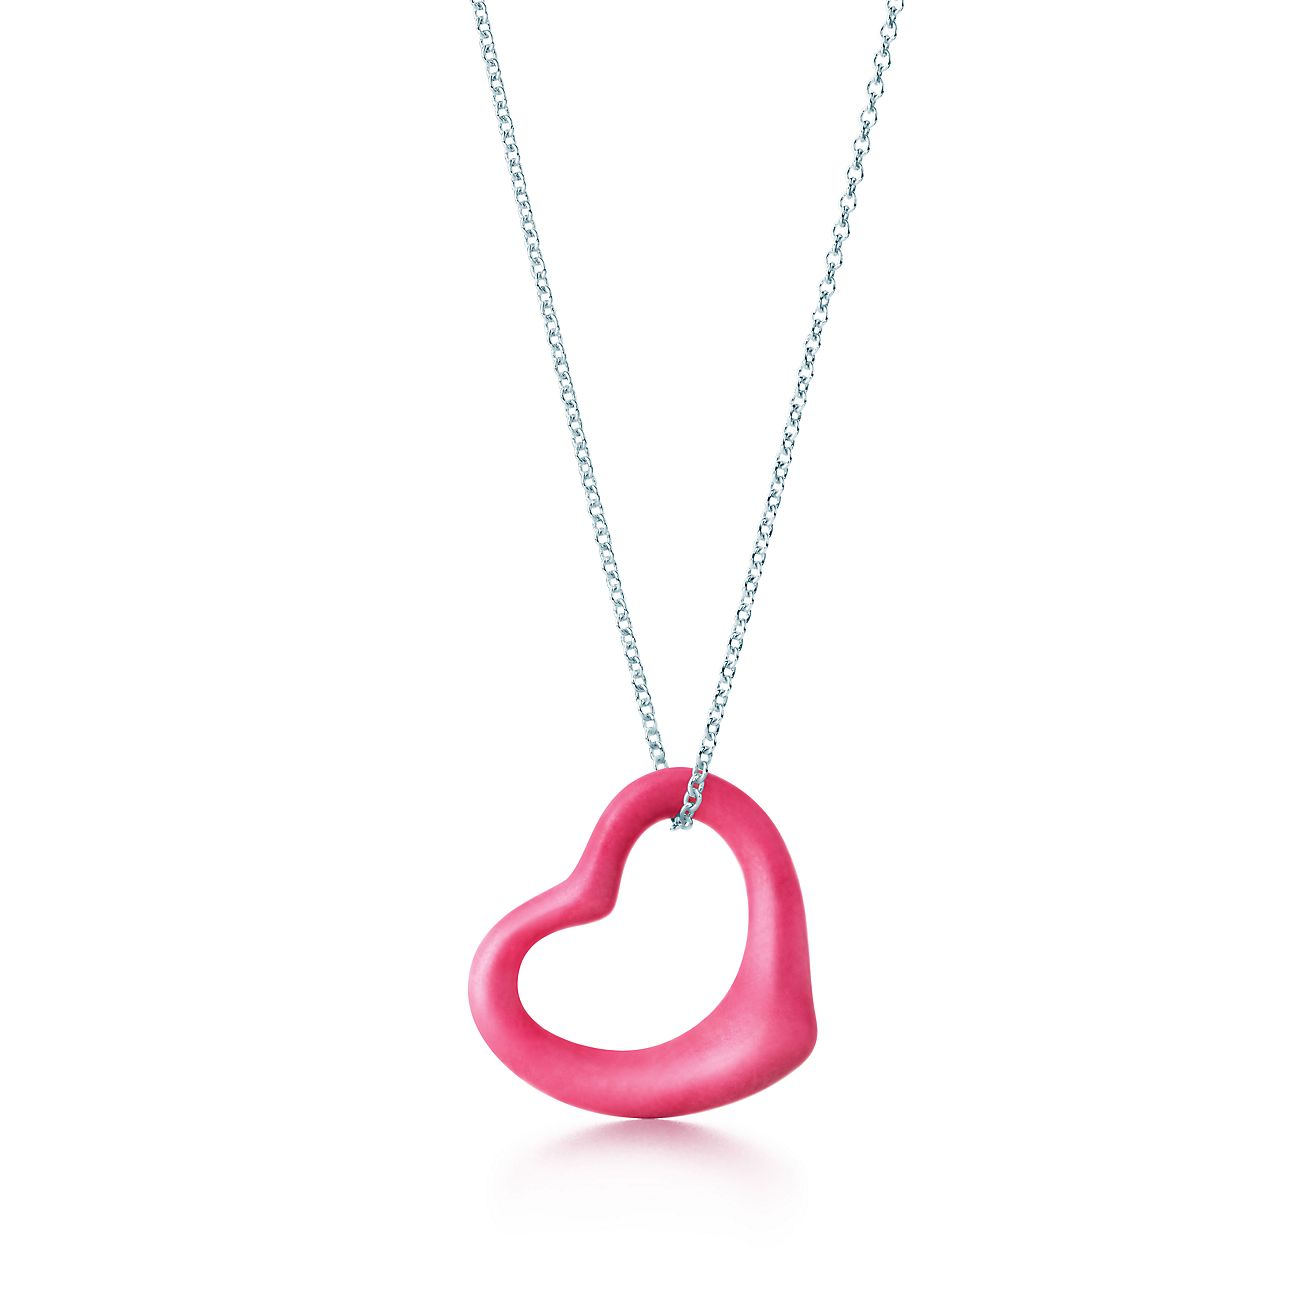 Elsa Peretti Open Heart pendant in sterling silver - Size 27 mm Tiffany & Co.